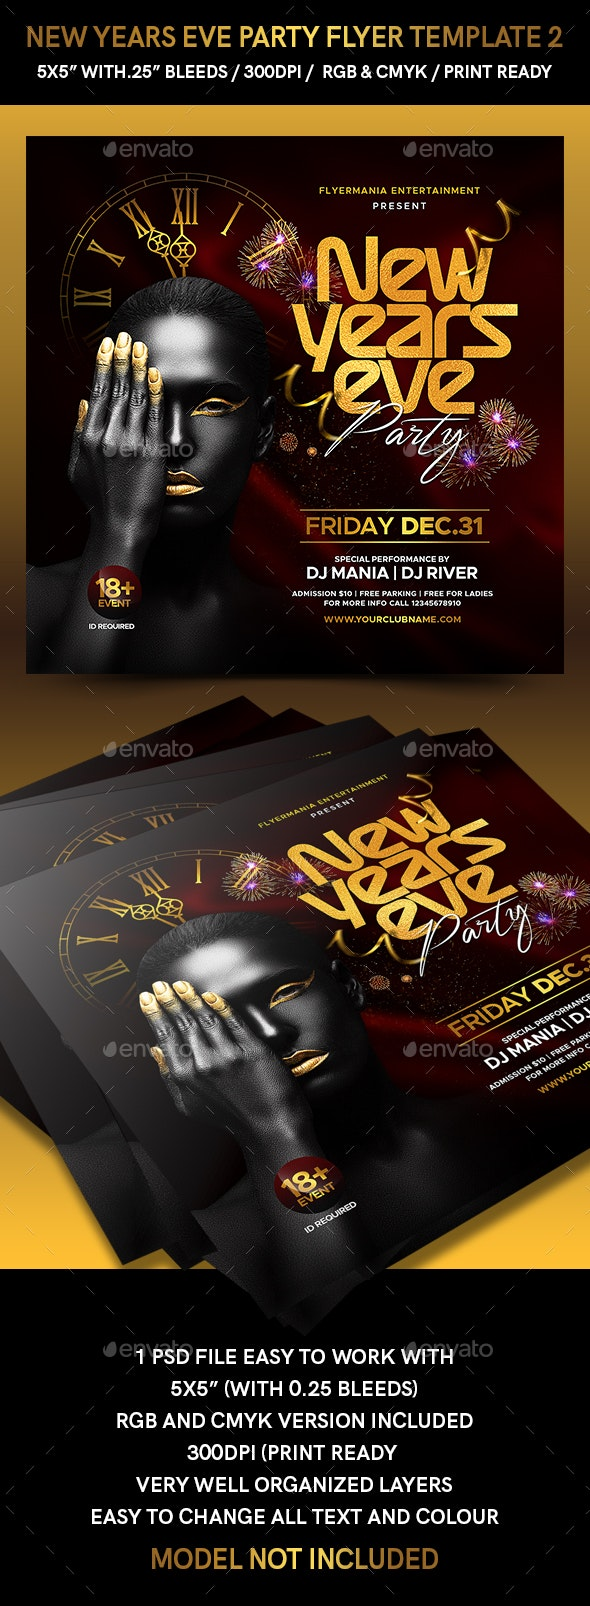 New Years Eve Party Flyer Template 2 - Events Flyers